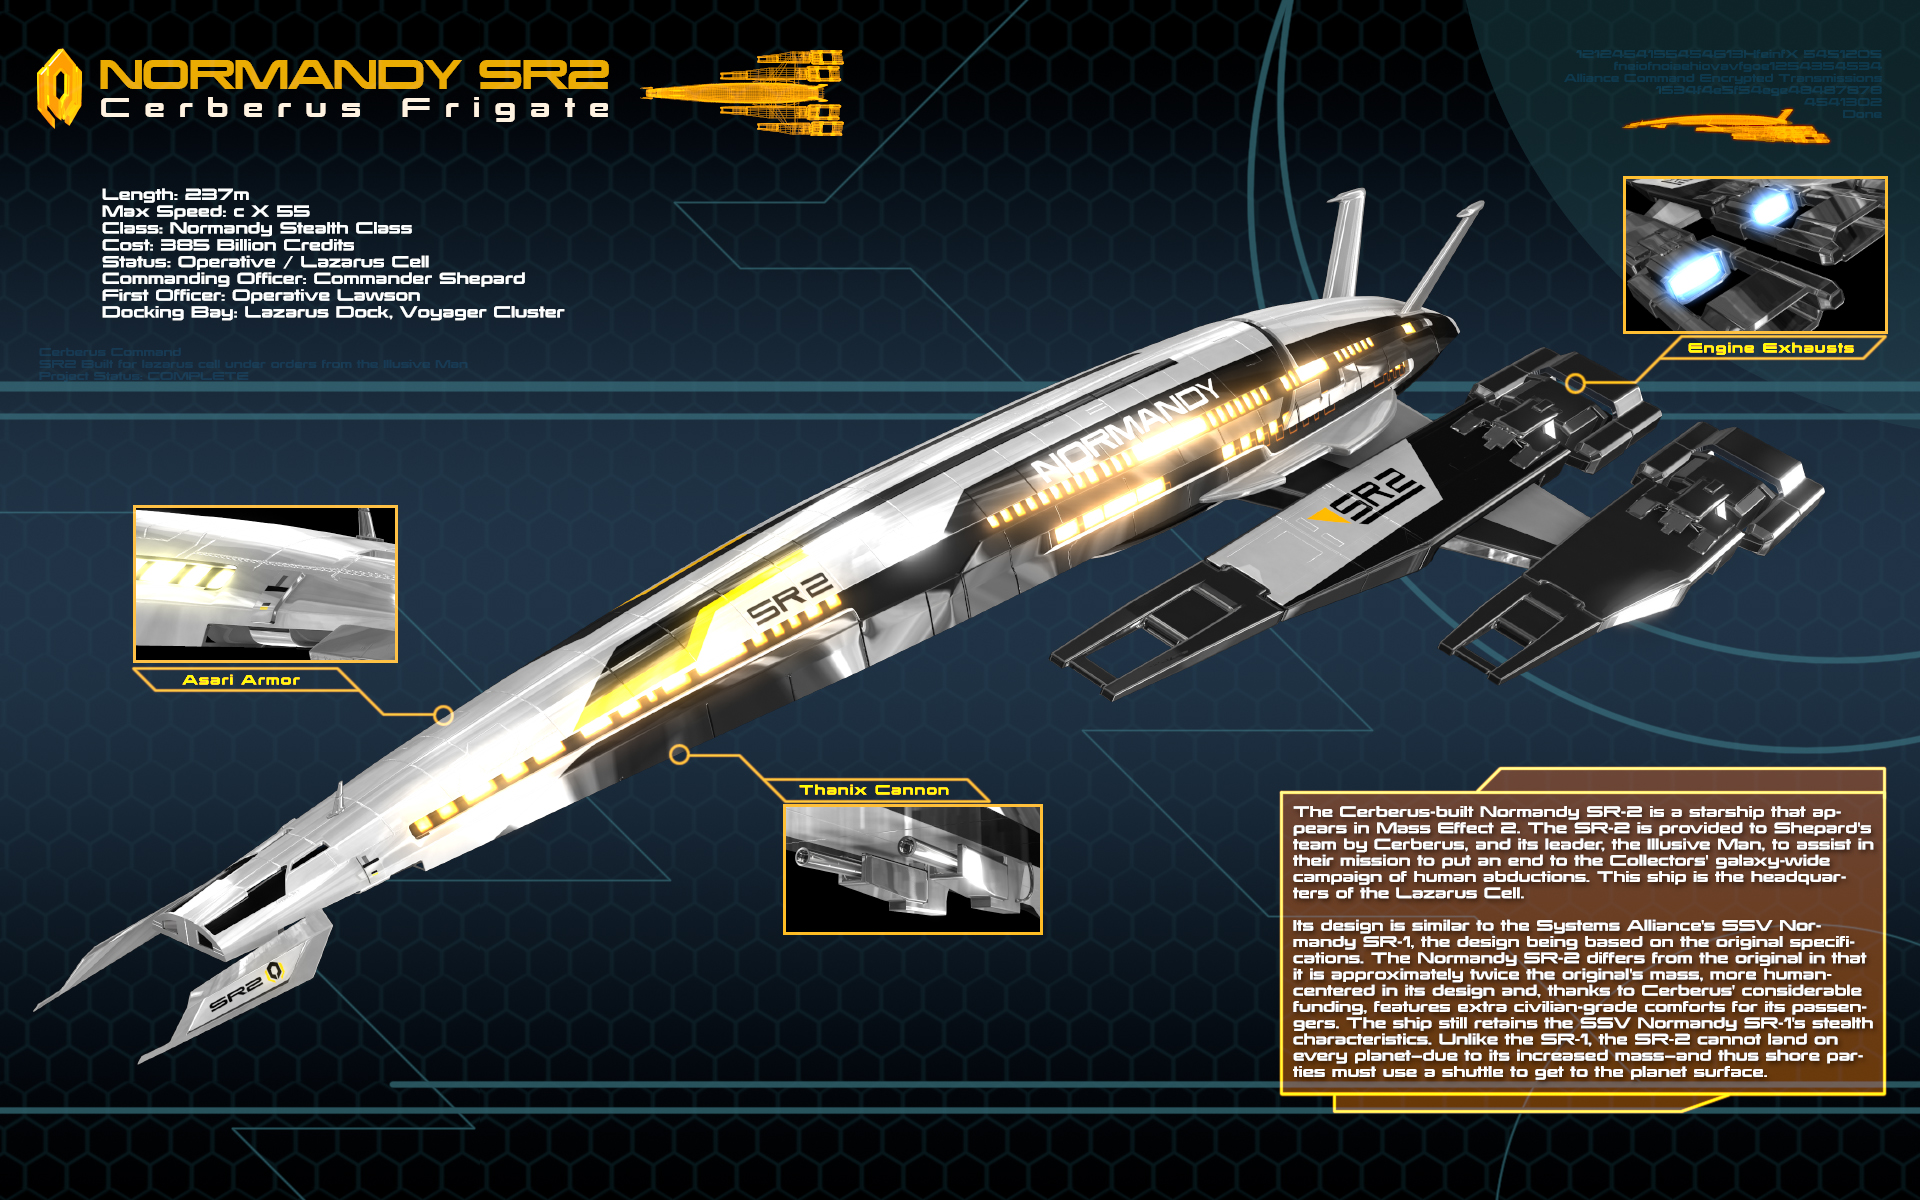 Ssv Normandy Sr 2 18 Ship Replica: Normandy SR2 Infography By Nico89-fx On DeviantArt